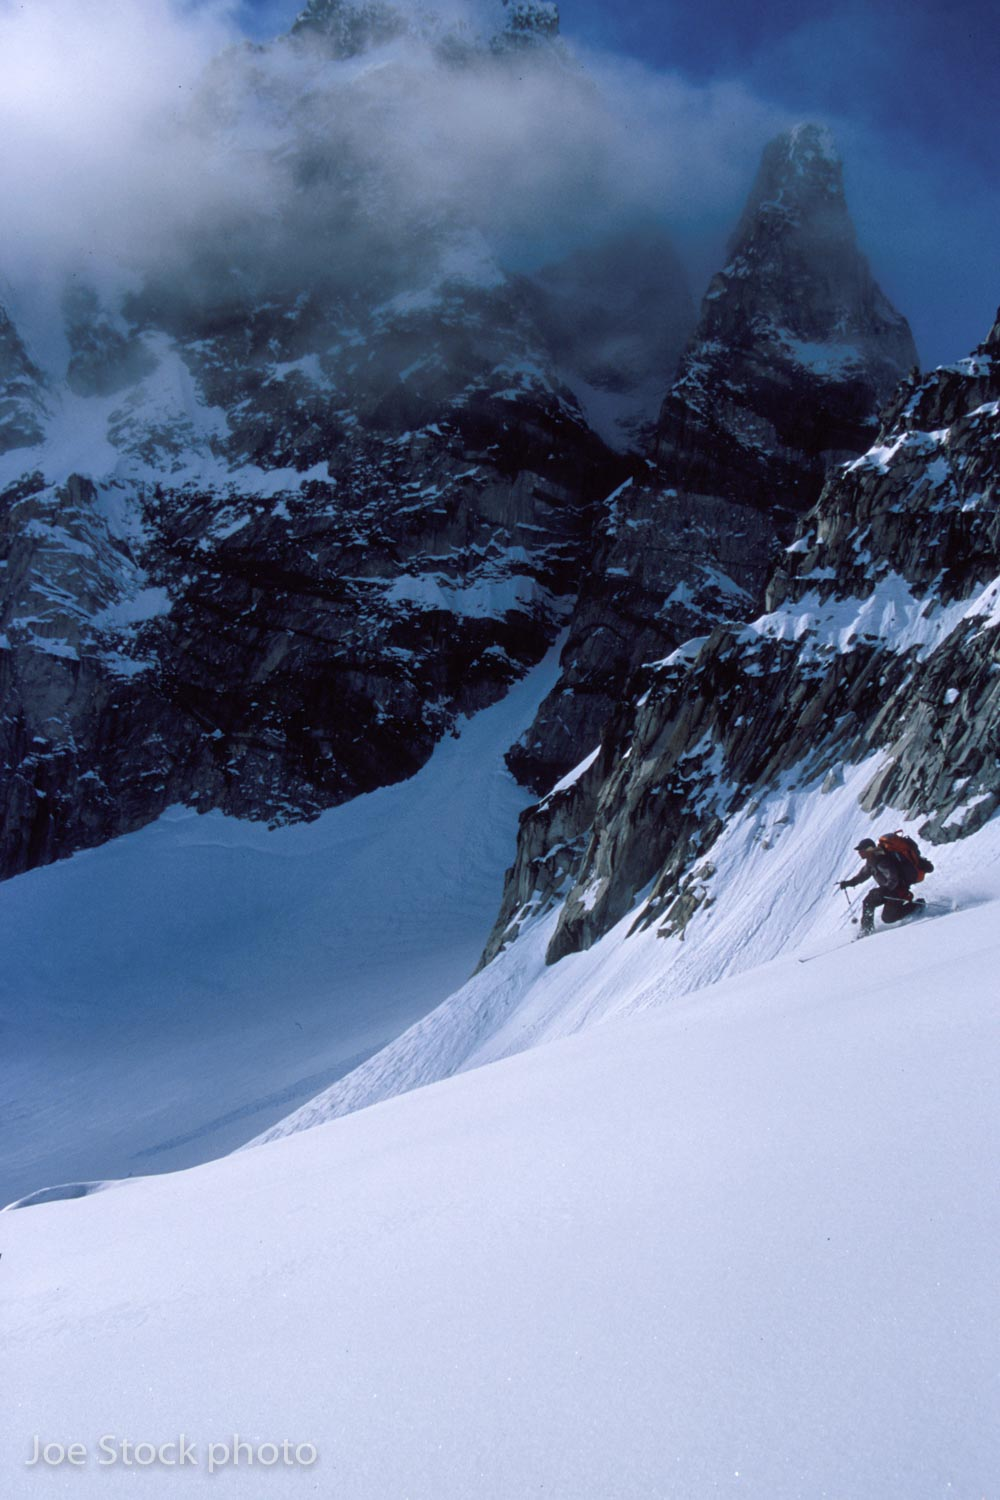 We had some great powder skiing along the route though.